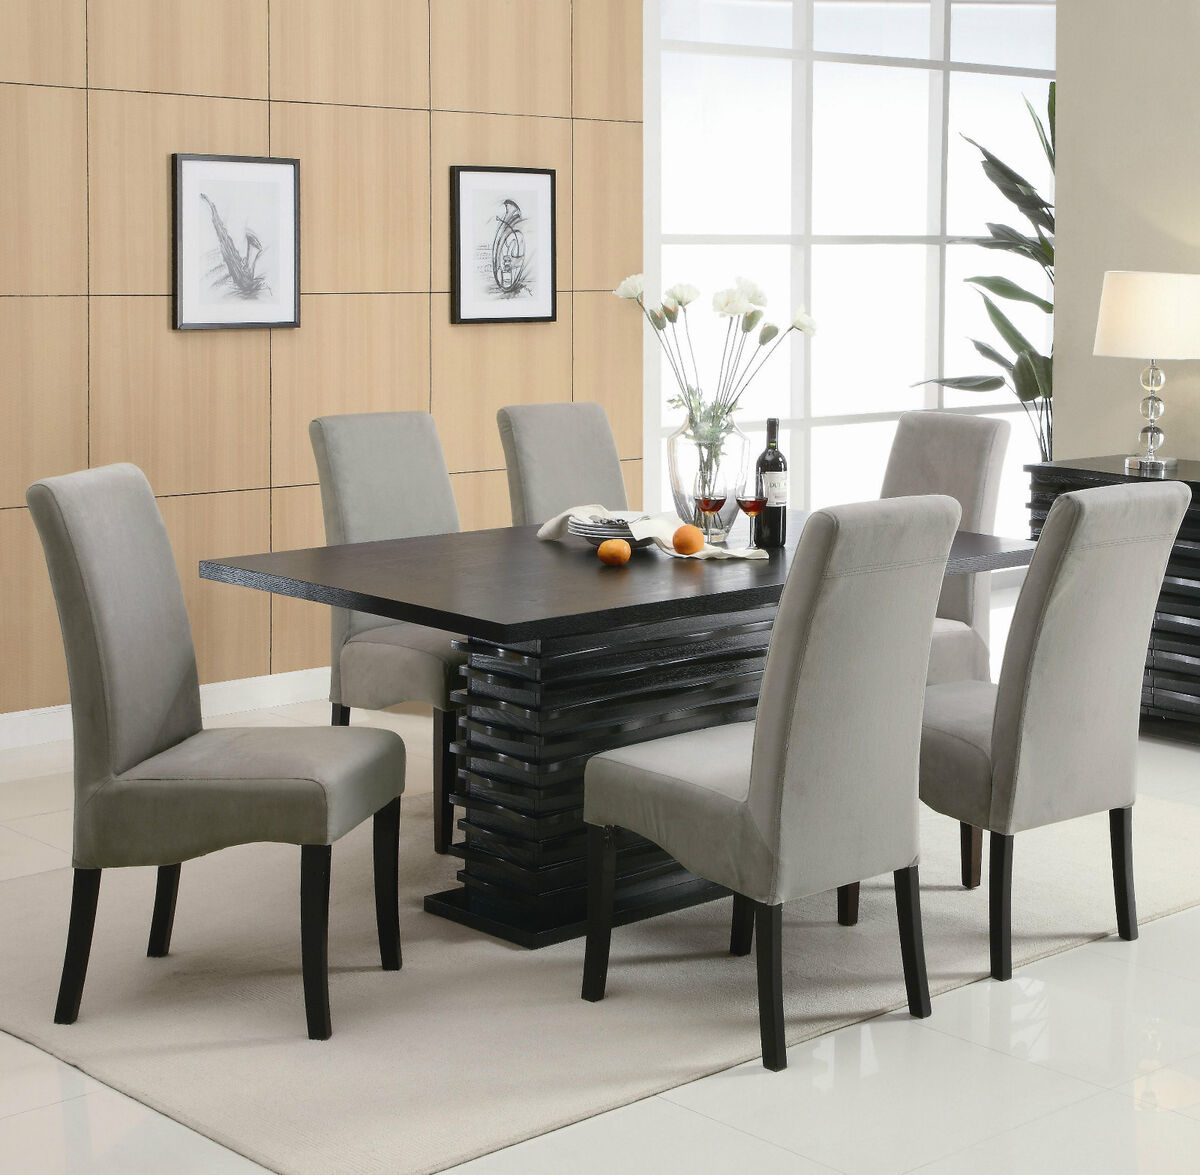 Dining table furniture contemporary dining table chairs for Modern table and chairs